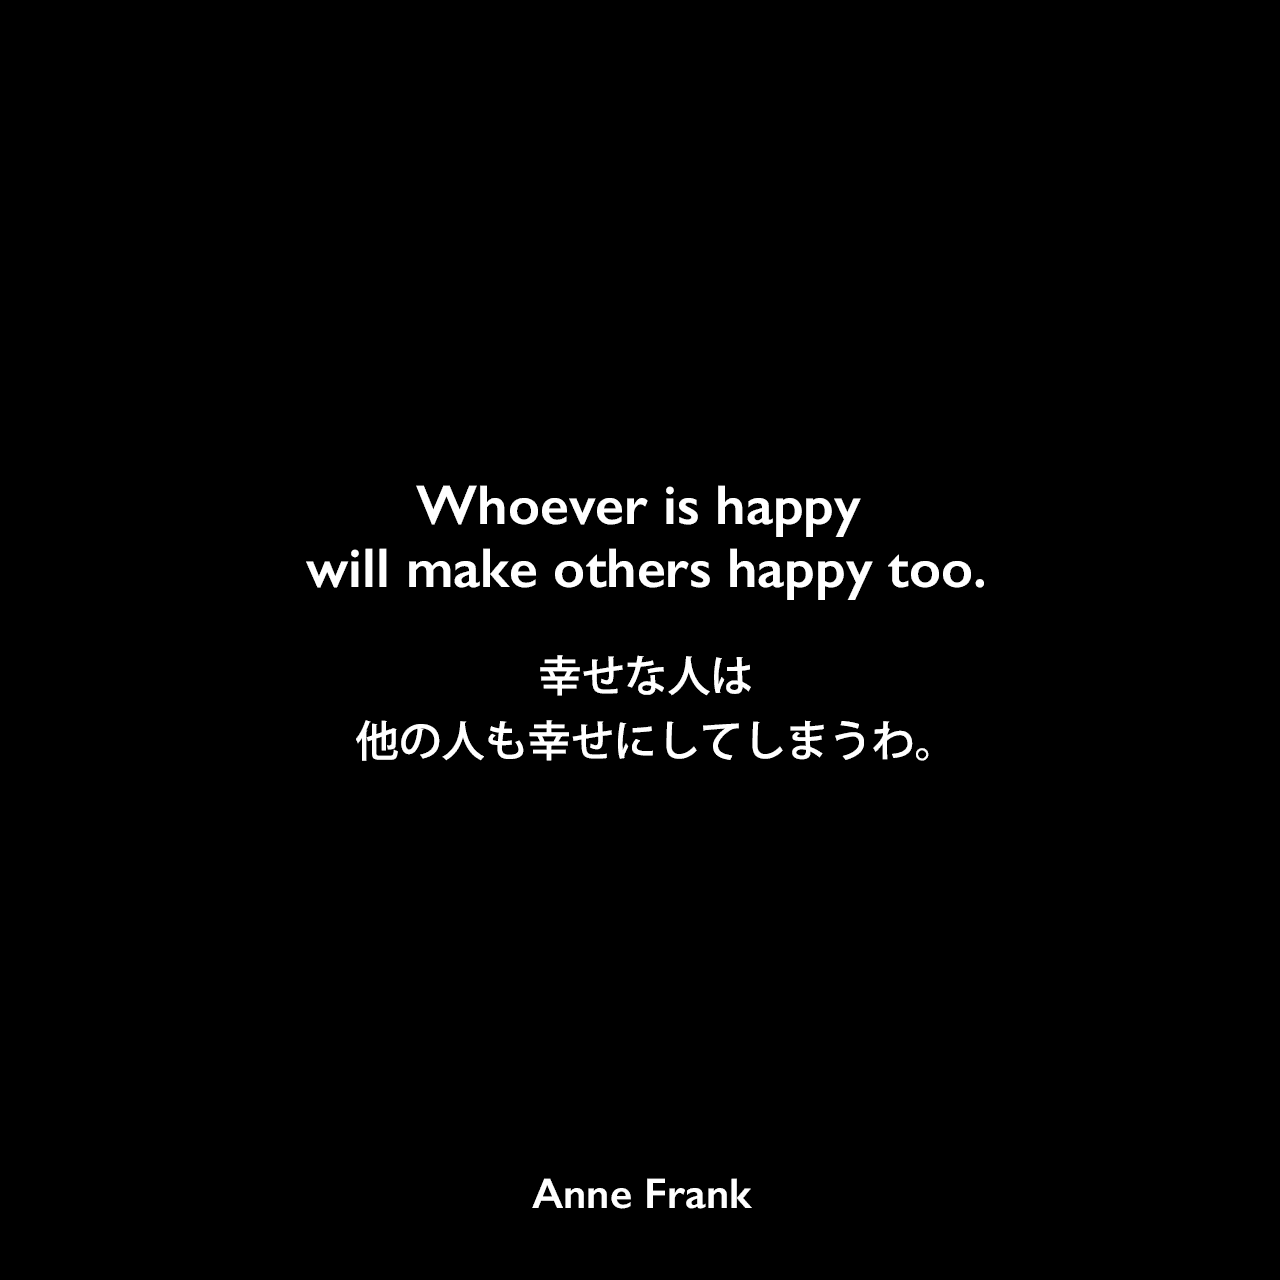 Whoever is happy will make others happy too.幸せな人は、他の人も幸せにしてしまうわ。